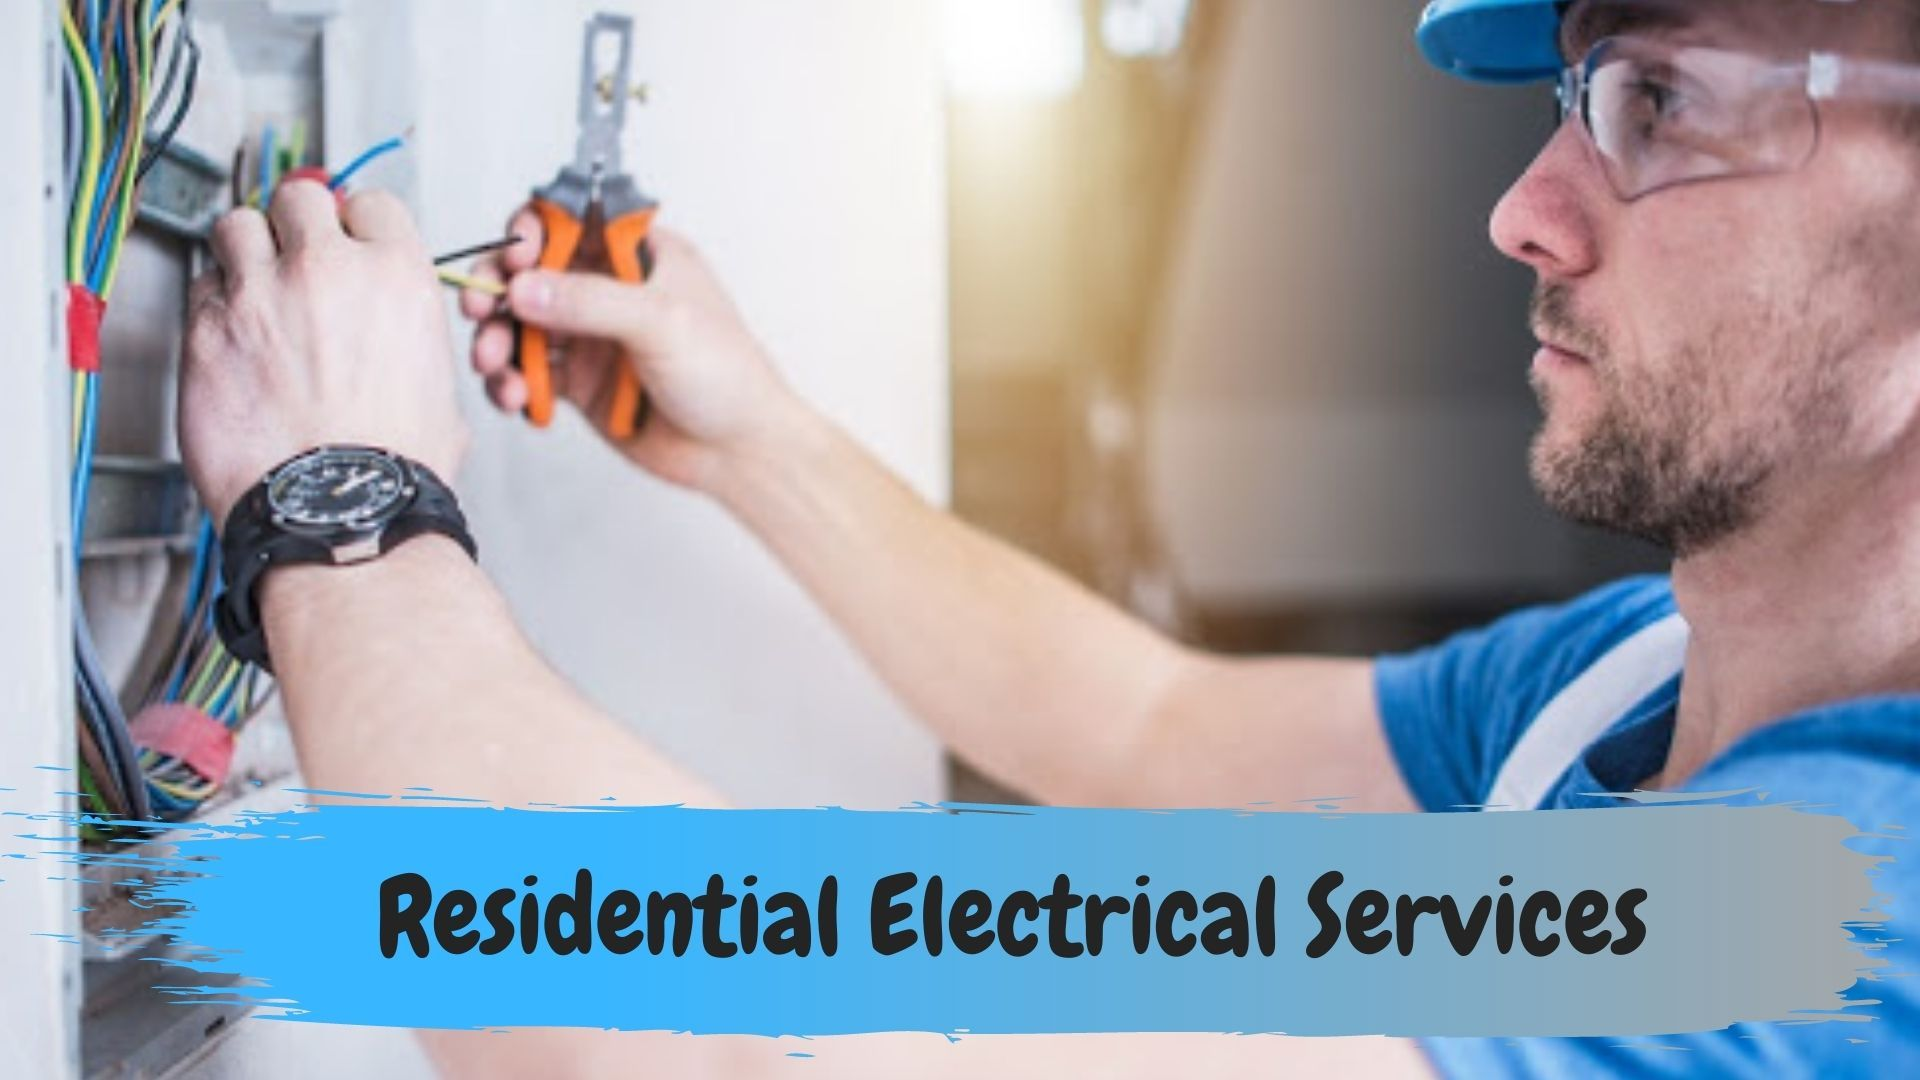 Residential Electrical Services | Residential electrical, Marina del rey  ca, Playa del rey ca